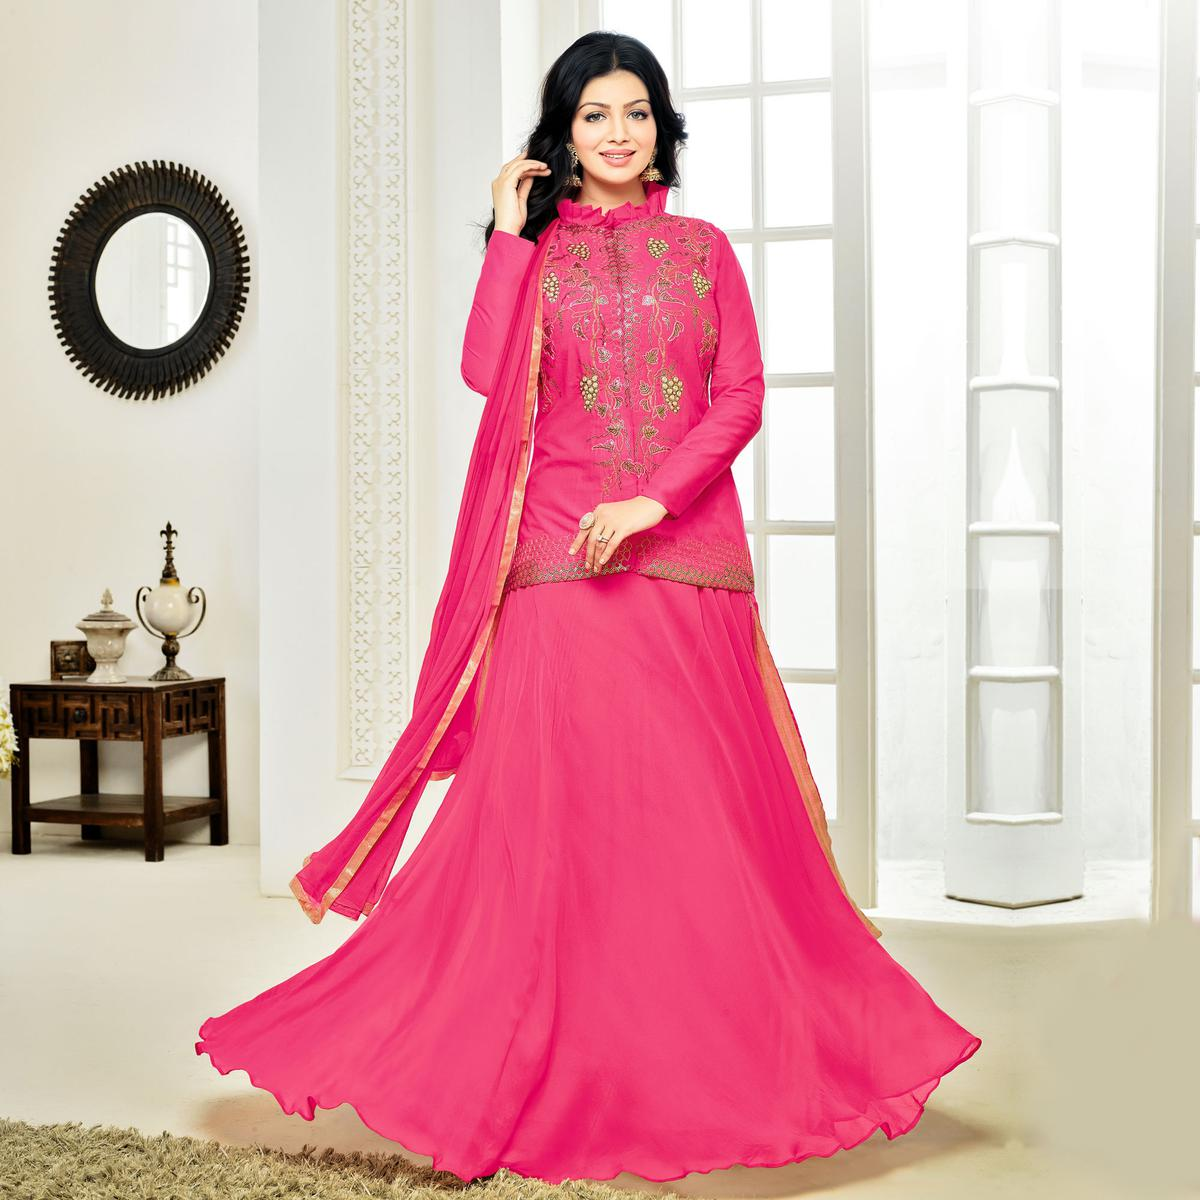 Graceful Pink Cotton Embroidered Lehenga